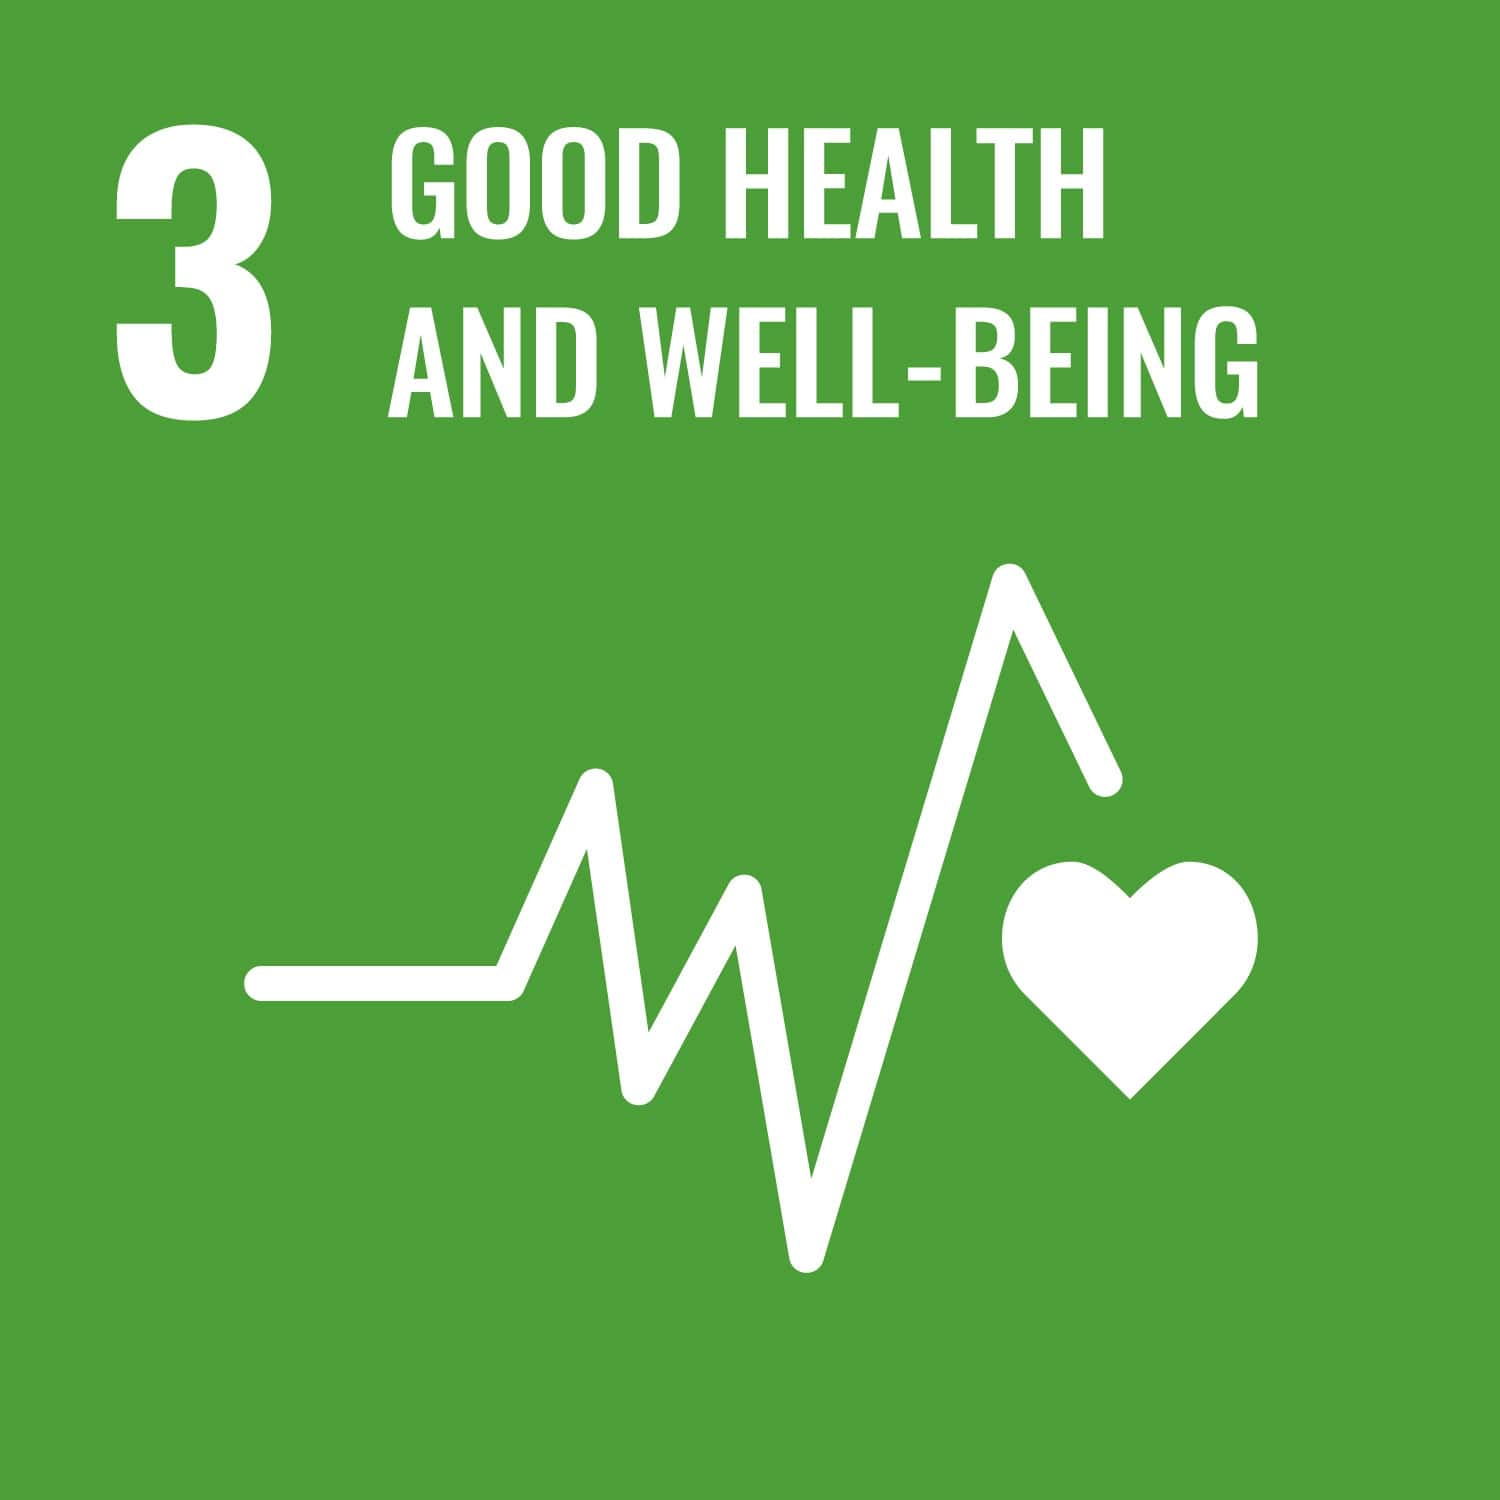 UN logo for good health and wellebing